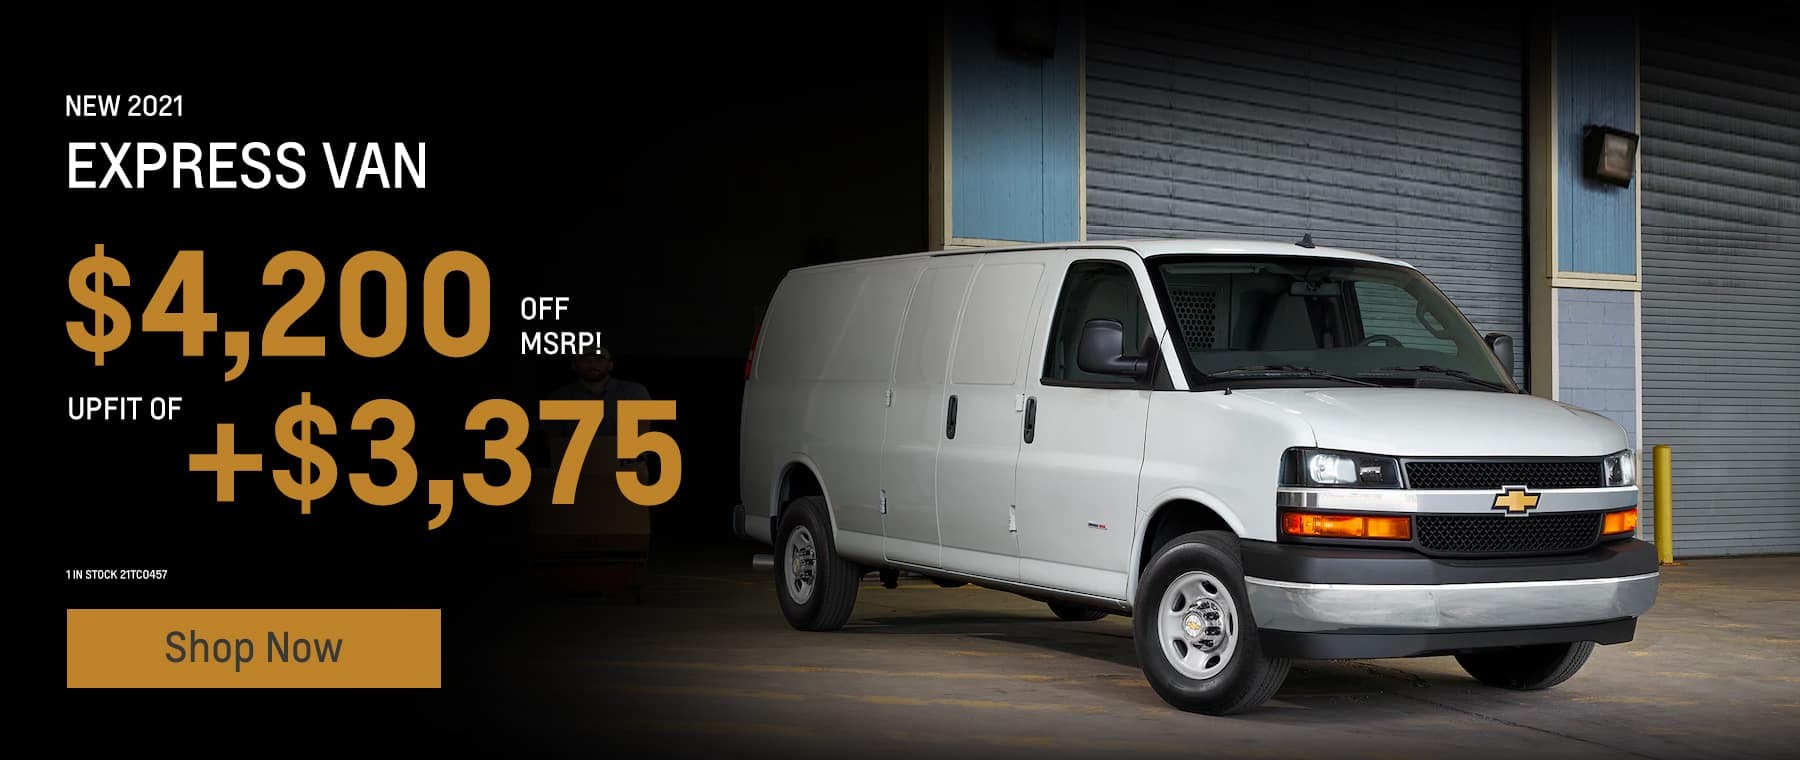 Express Van. Savings = $4,200 off MSRP. Upfit of +$3,375. 1 in stock 21TC0457